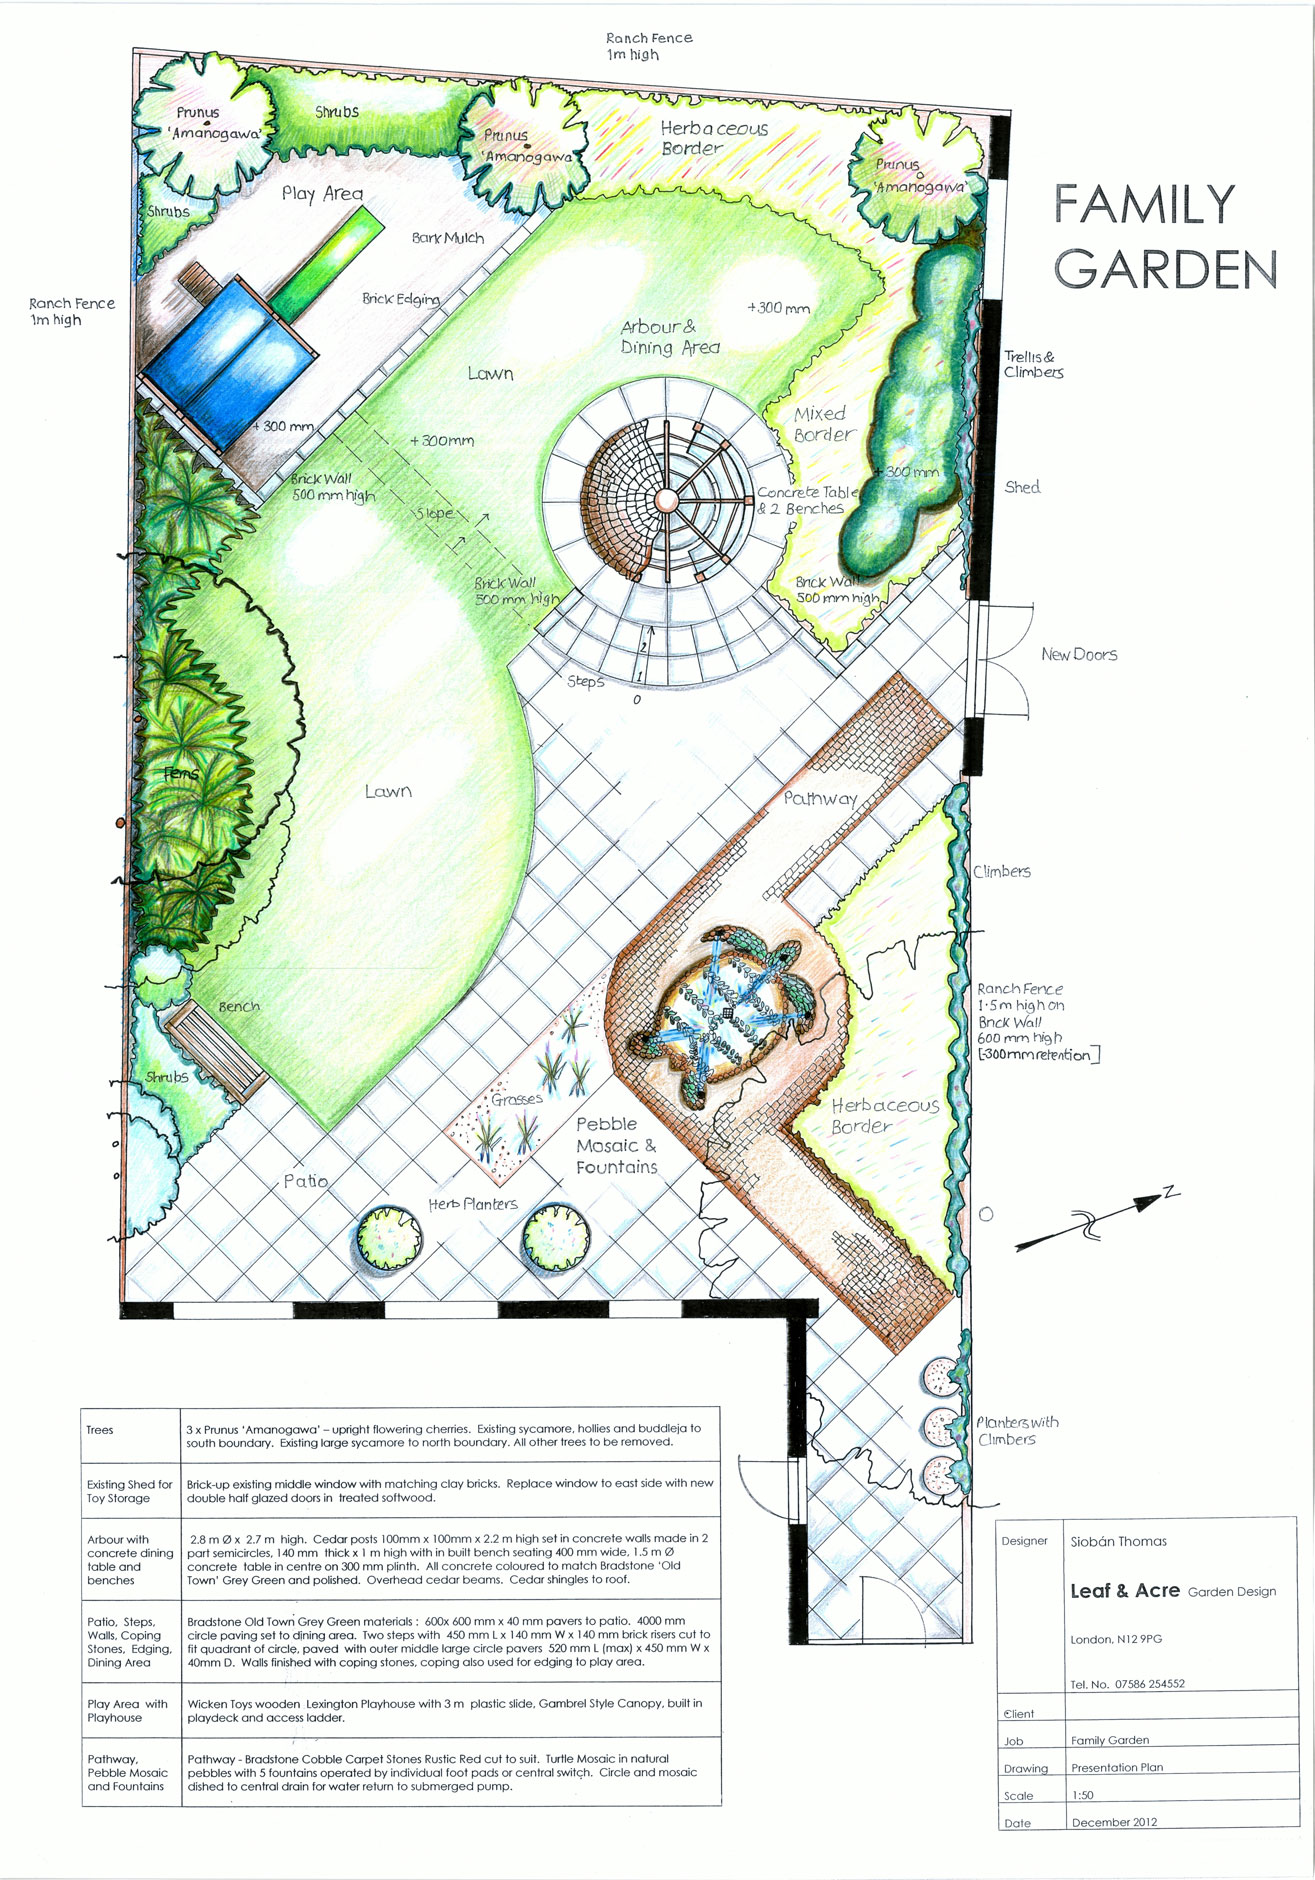 Garden design portfolio leaf and acre for Landscape design plans